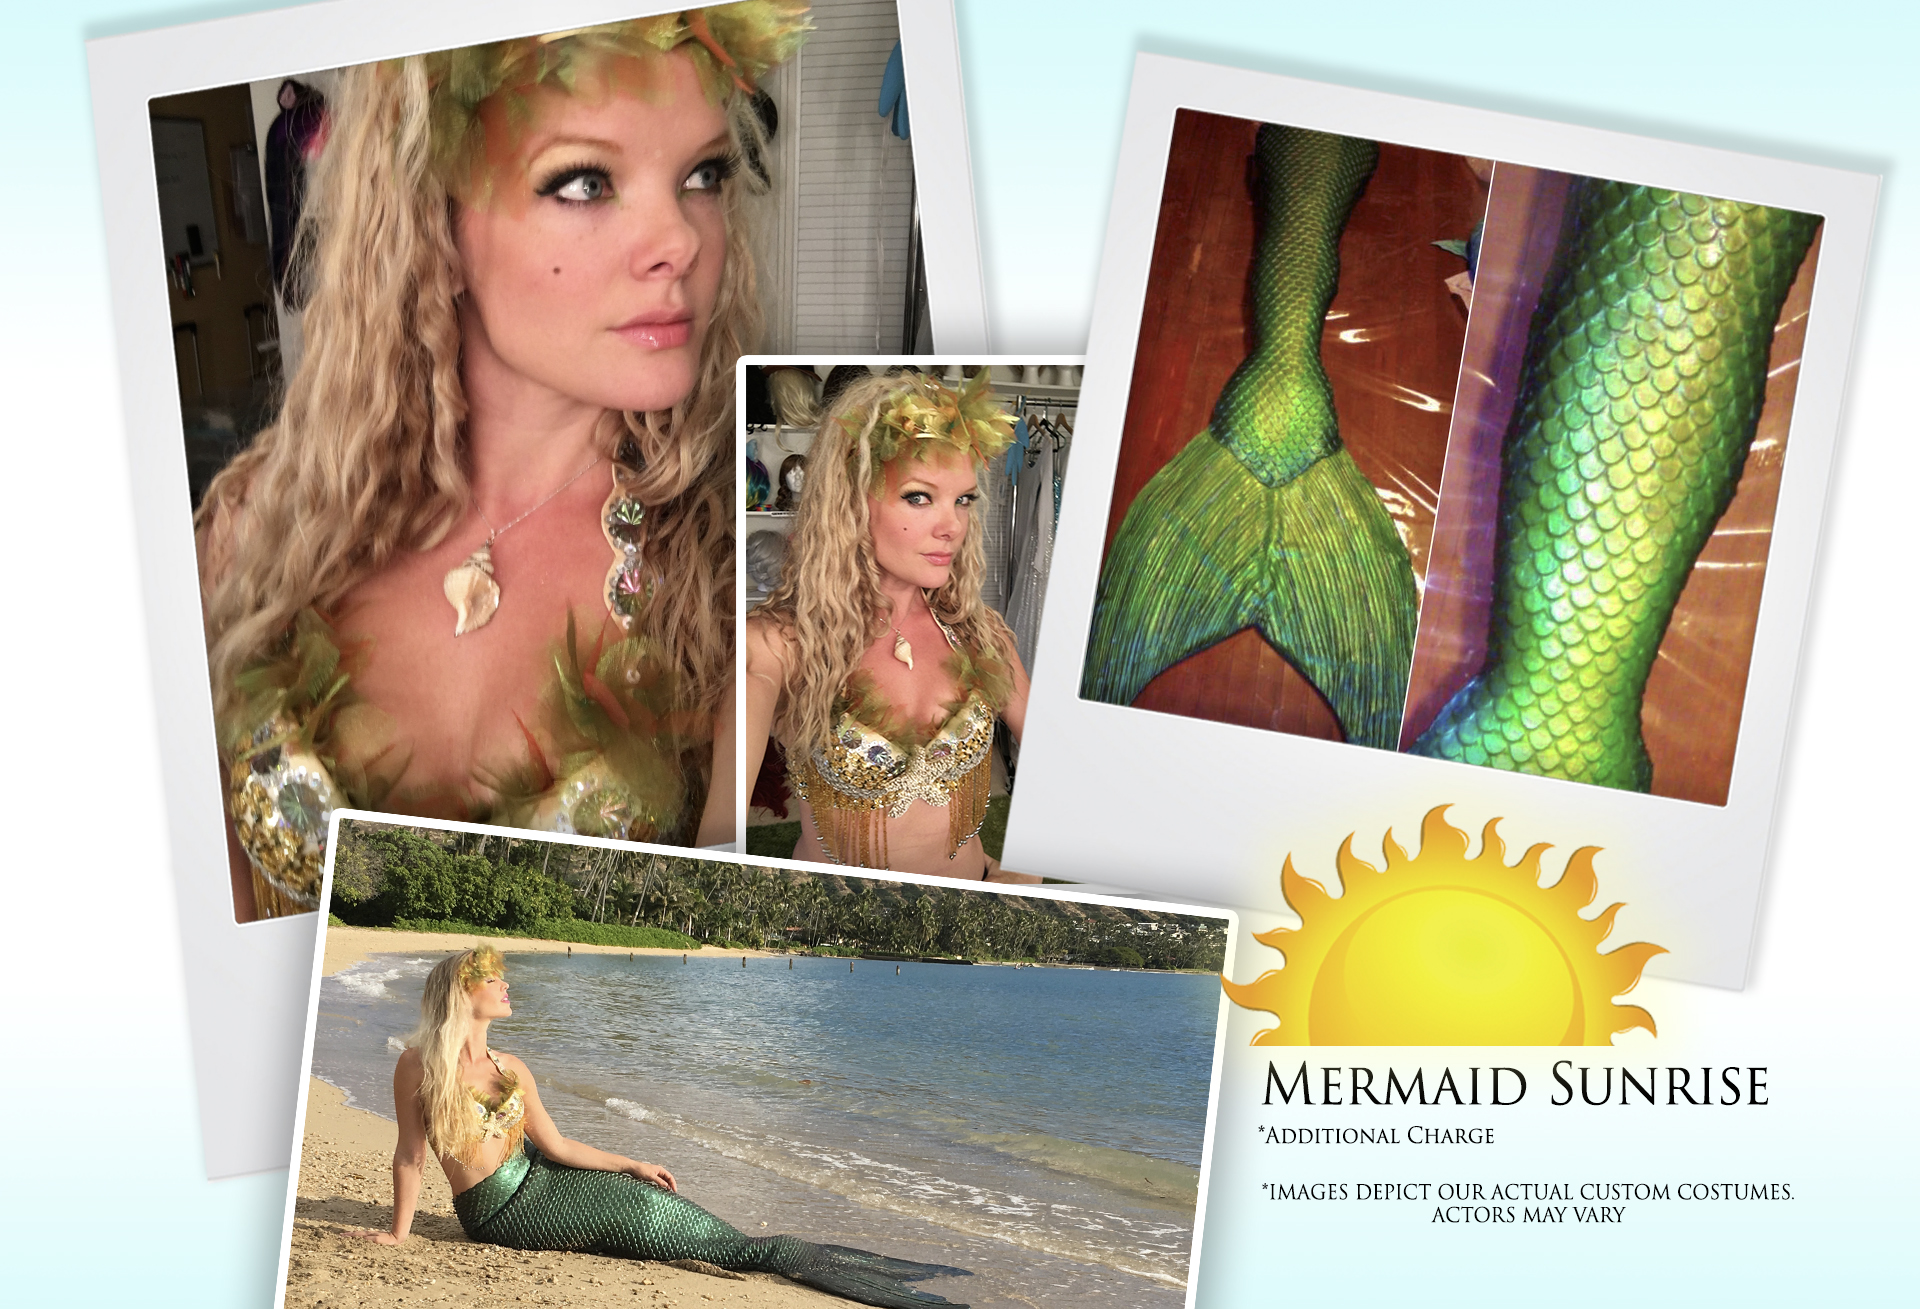 Mermaid Sunrise